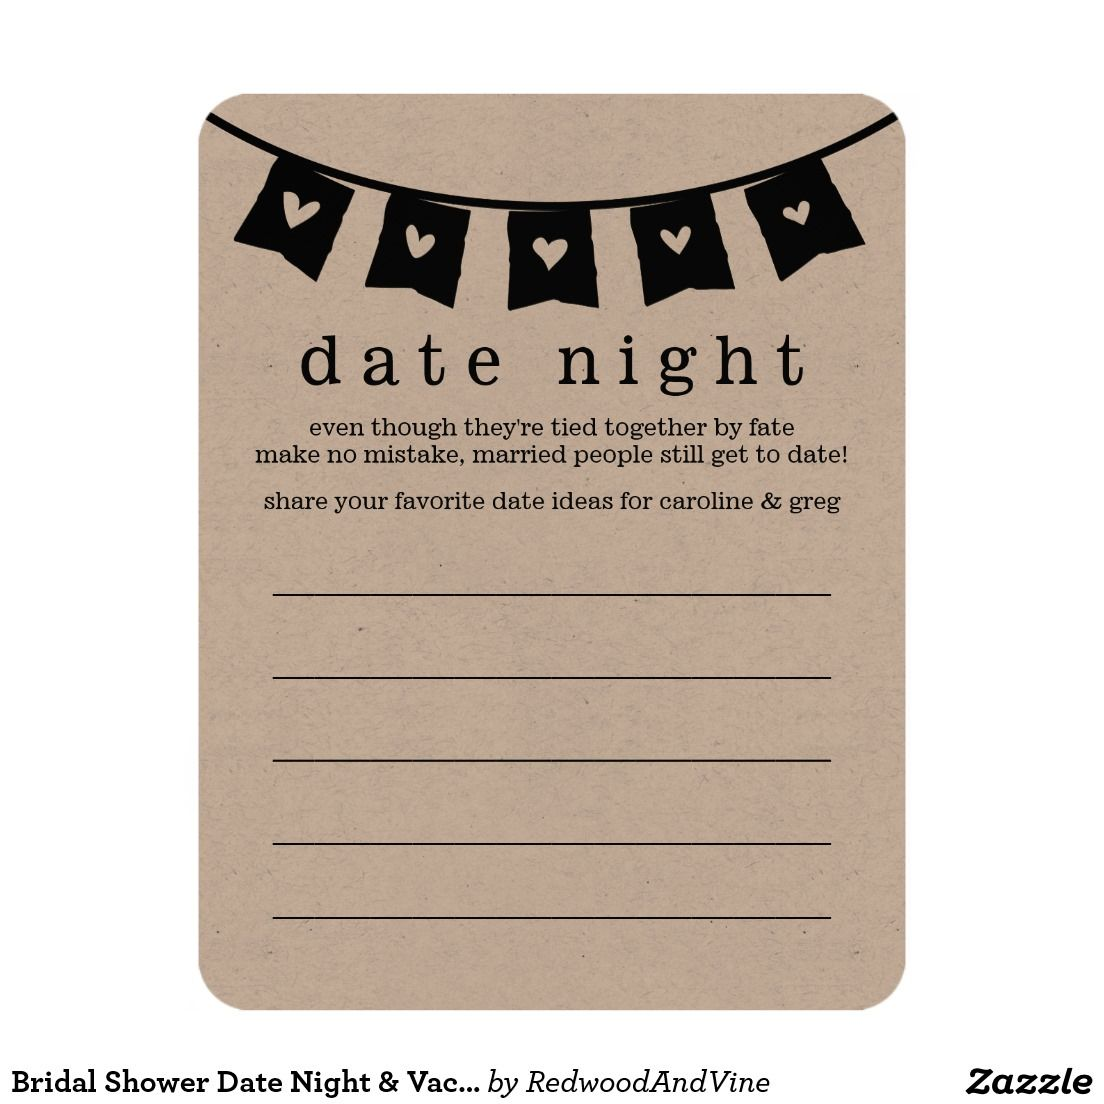 Bridal Shower Date Night & Vacation Idea Cards |Beautiful bridal shower invitations to fit your bride's style! Shop the hundreds of wedding and bridal shower invitation designs on Zazzle, where you can completely customize them! Unique designs made for the unique bride - boho, bohemian, whimsical, rustic, vintage, romantic, fun, lingerie shower, unique, colorful, pastel, custom, glitter, pink, floral, watercolor, tea party, brunch and bubbly, modern, classic, chic - the possibilities are…